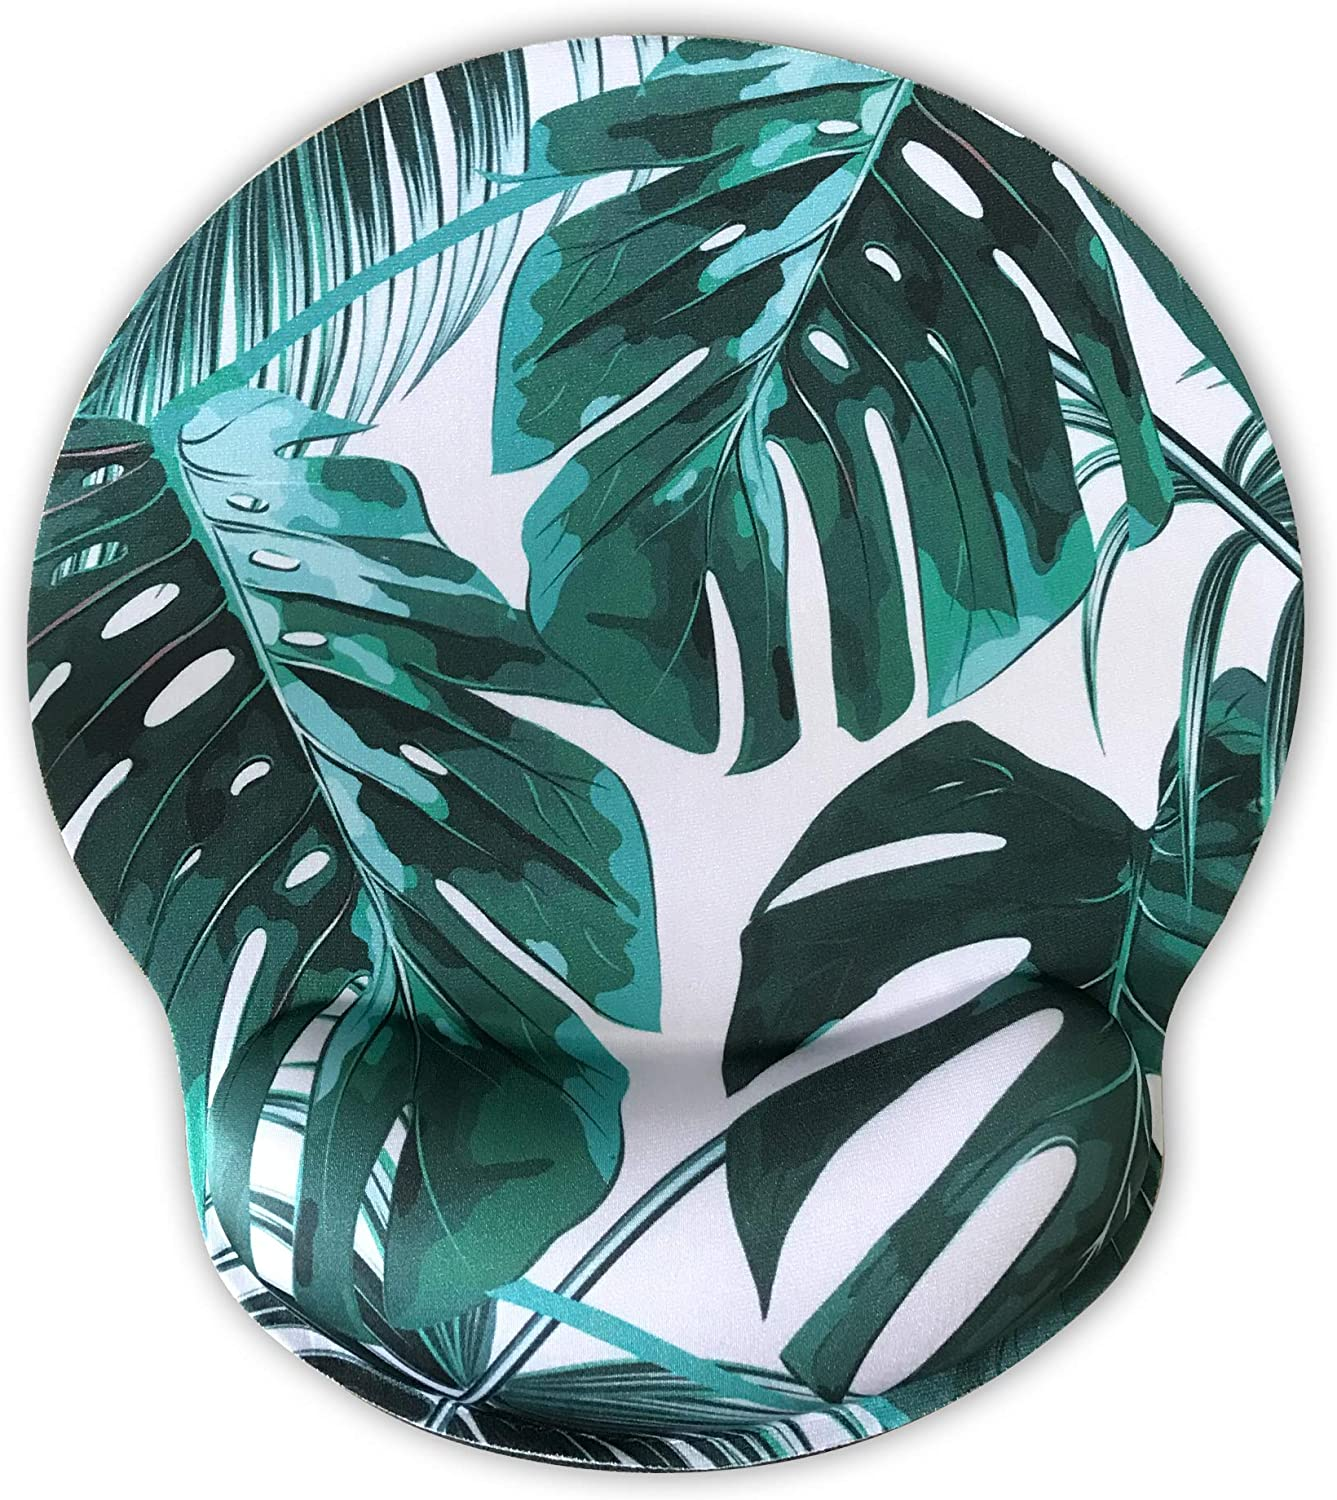 Ergonomic Mouse Pad with Wrist Support,Dooke Cute Wrist Pad with Non-Slip Rubber Base for Computer, Laptop, Home Office Gaming, Working, Easy Typing & Pain Relief Tropical Leaf